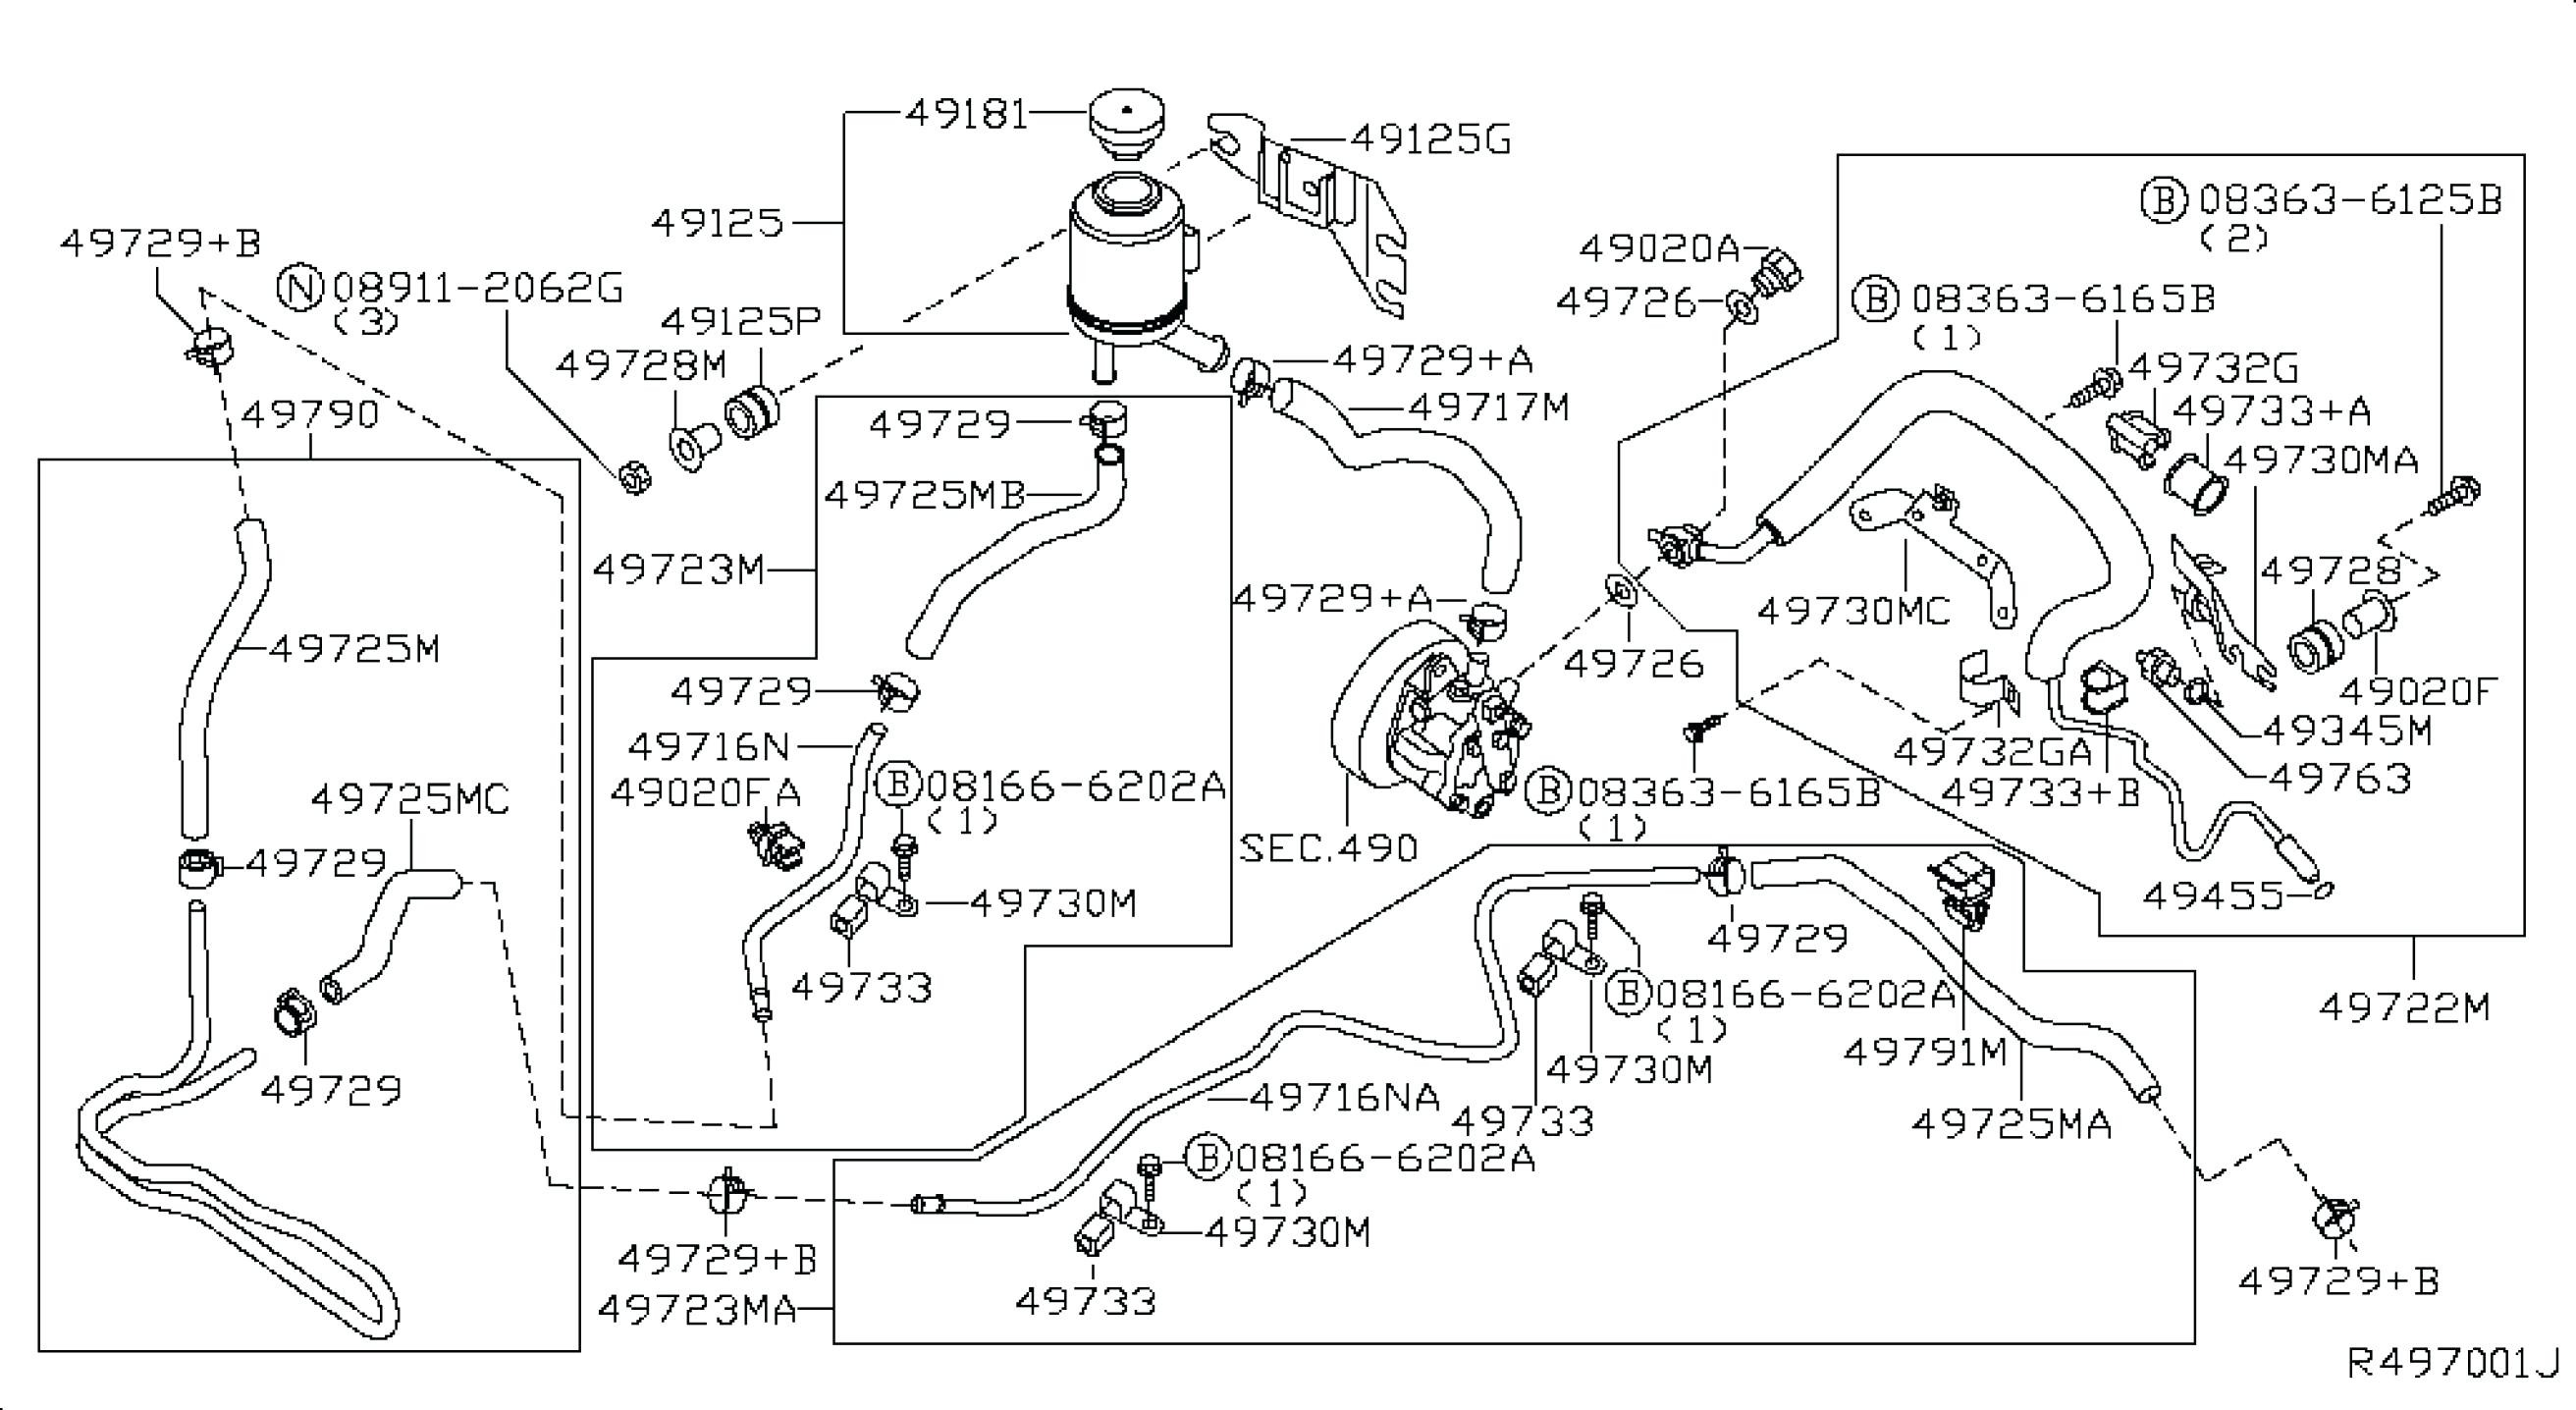 2002 Subaru Forester Engine Diagram Wiring Diagram For Free